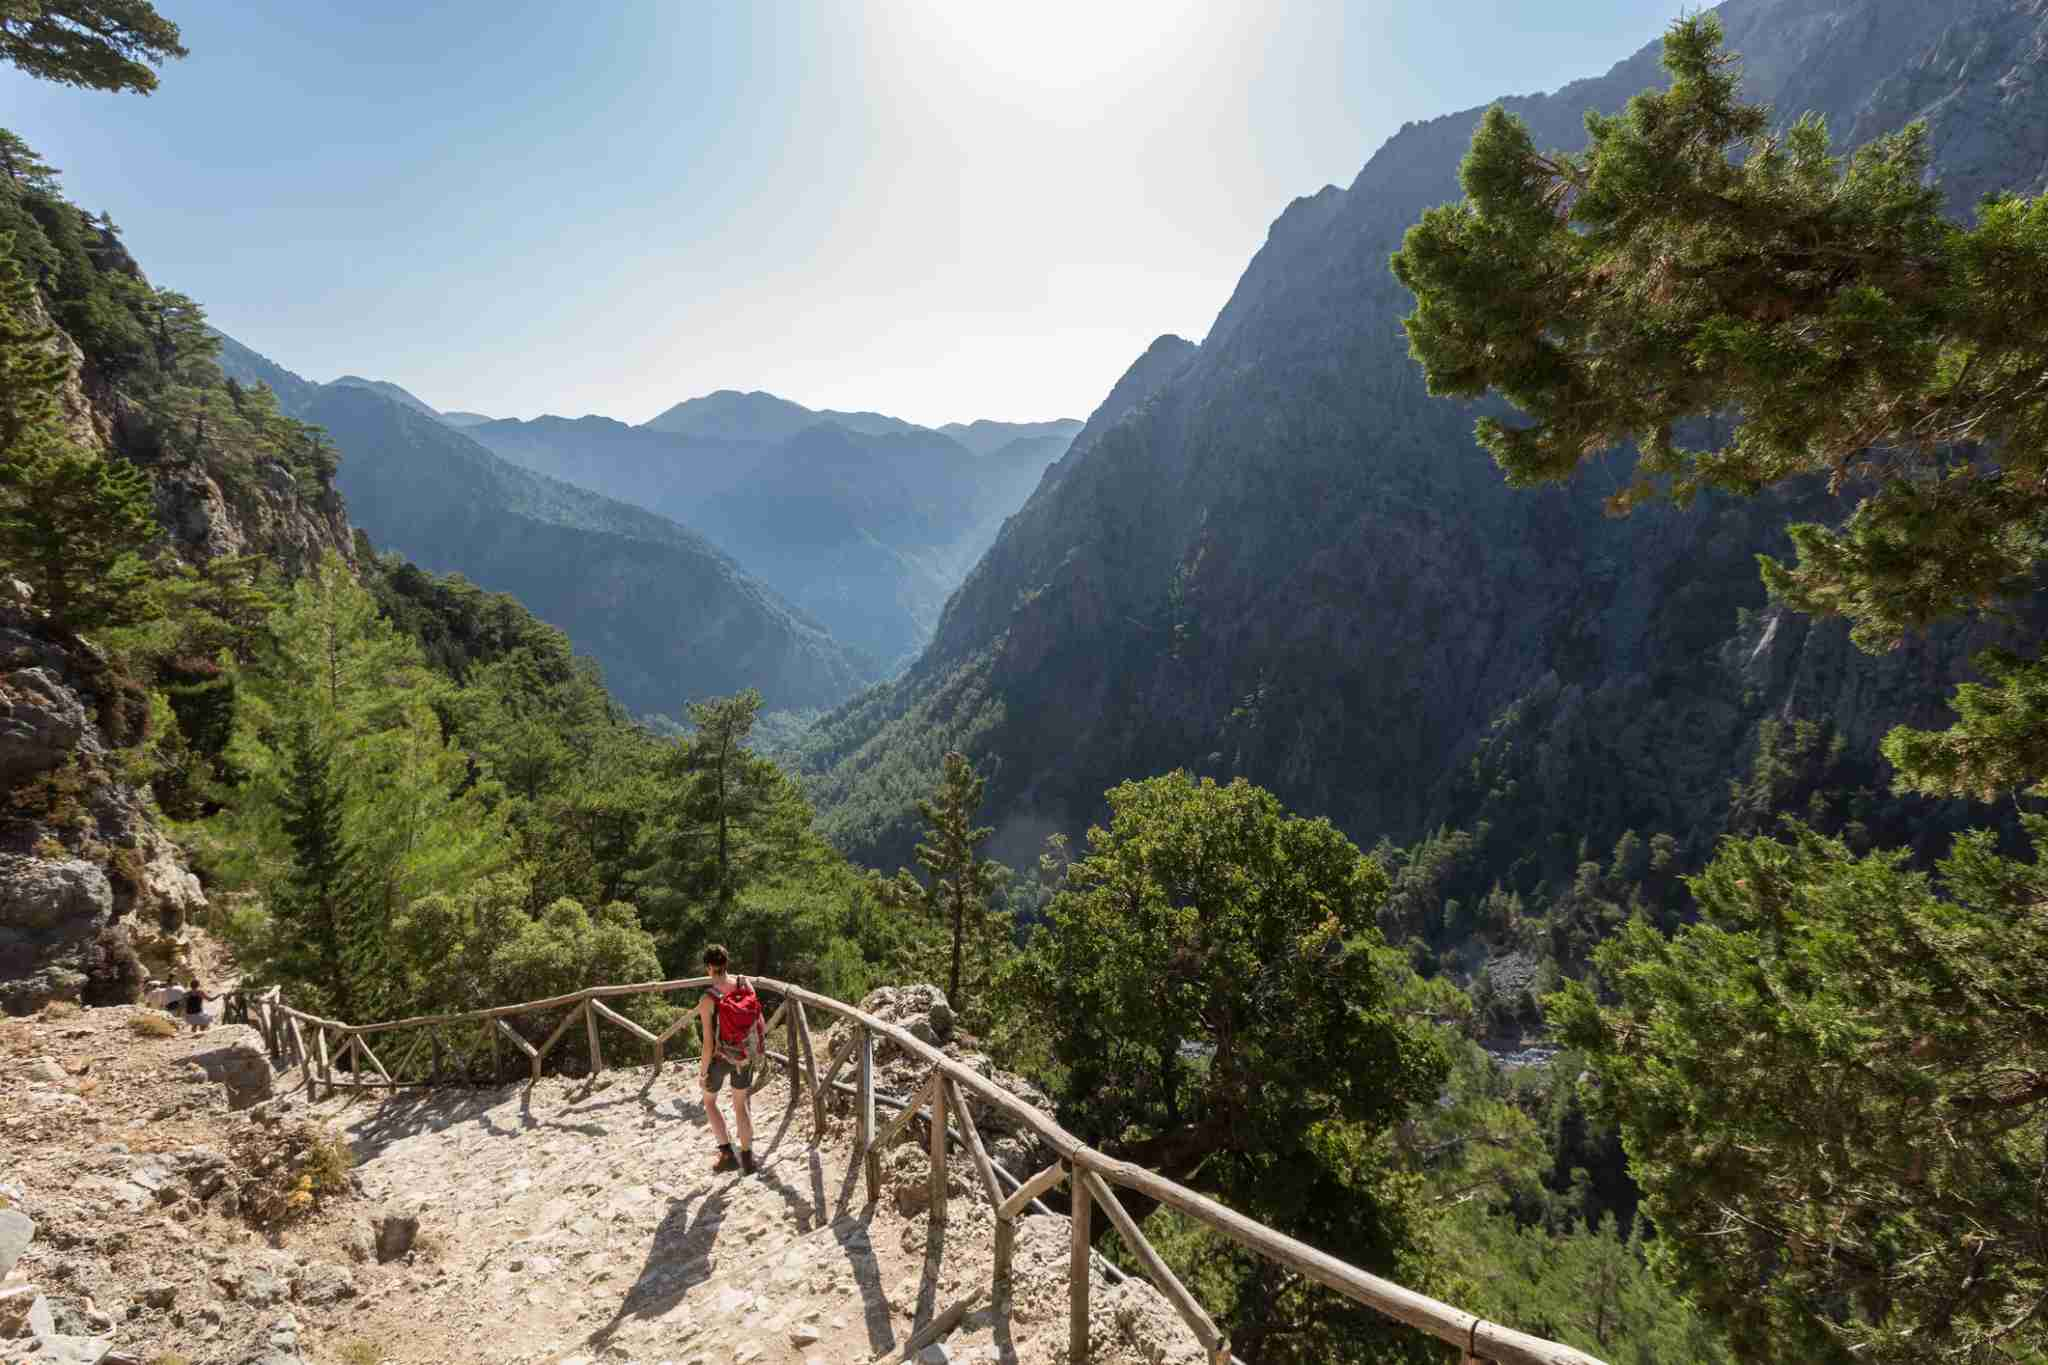 A woman on her way down to the entrance of Samariá Gorge, Crete. Photo by Saro17-Getty